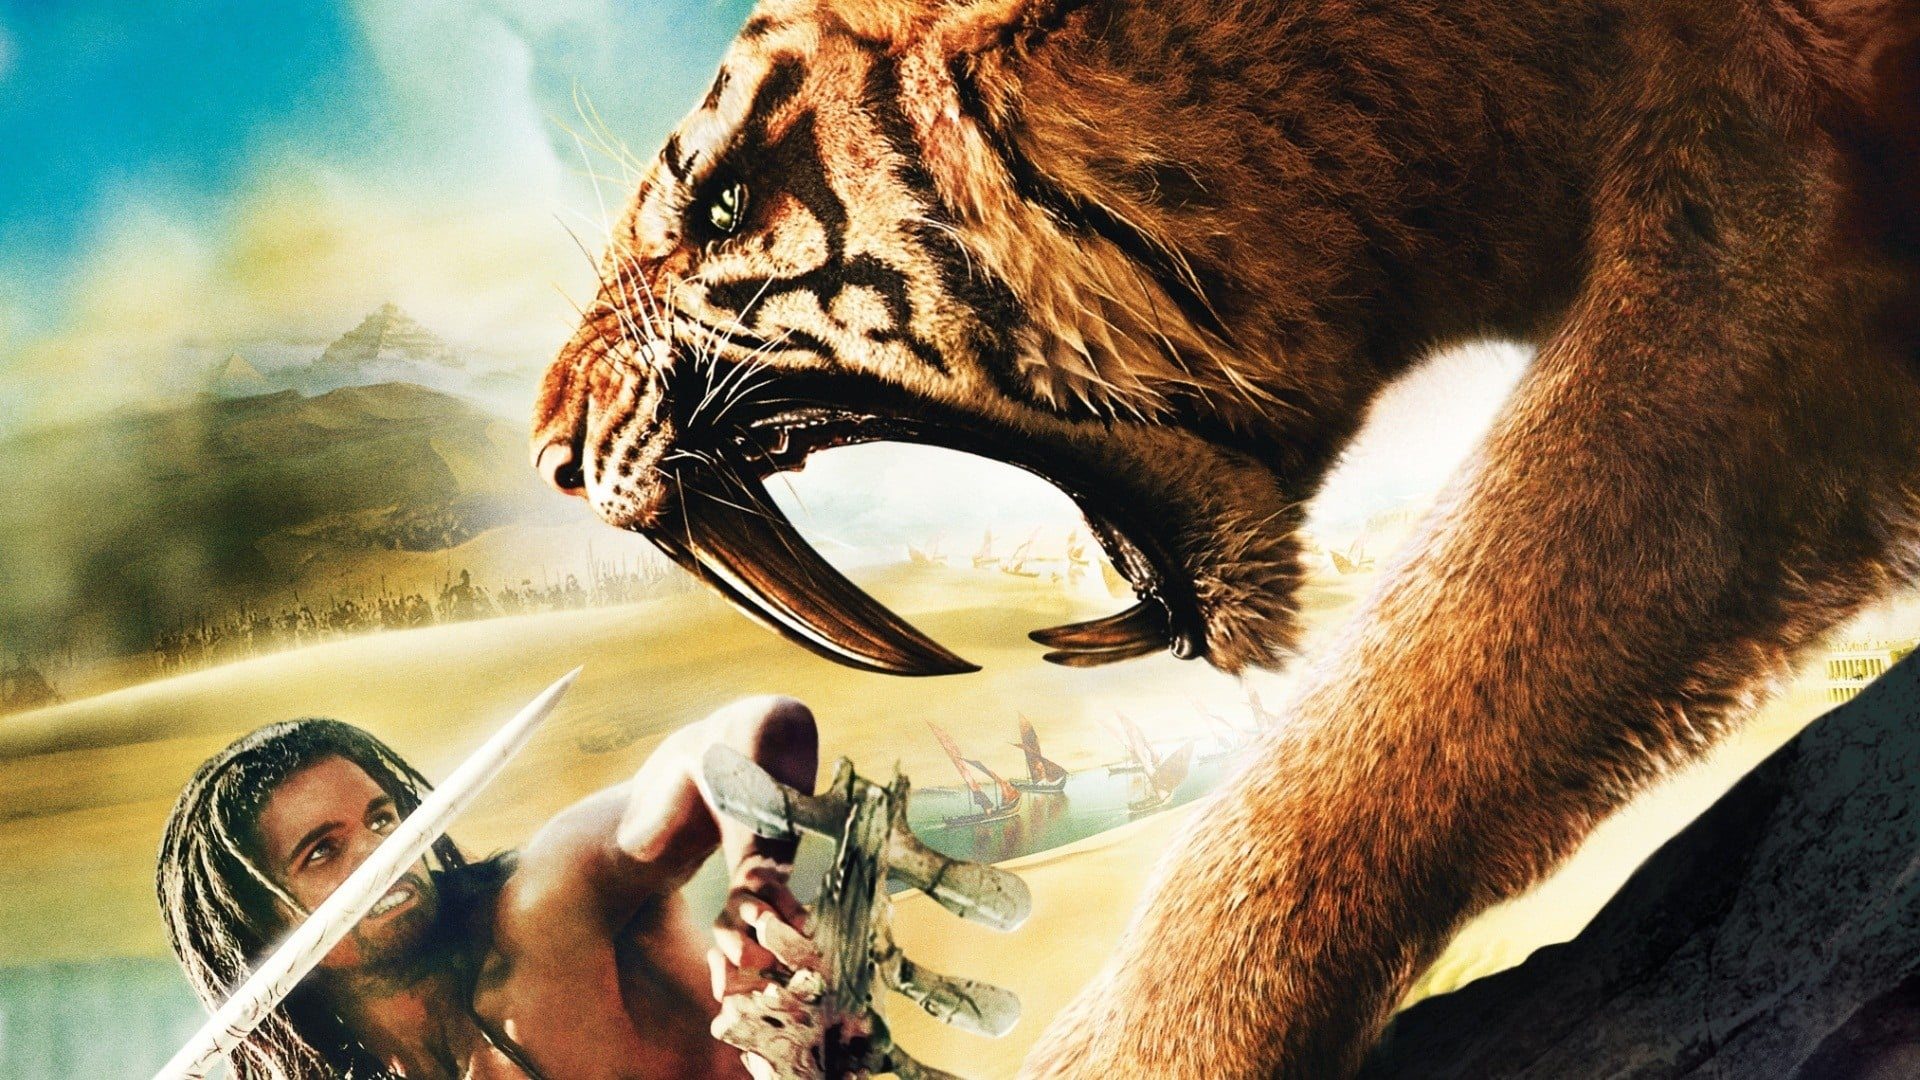 10,000 BC (2008) - Movie Reviews, Trailers and Information